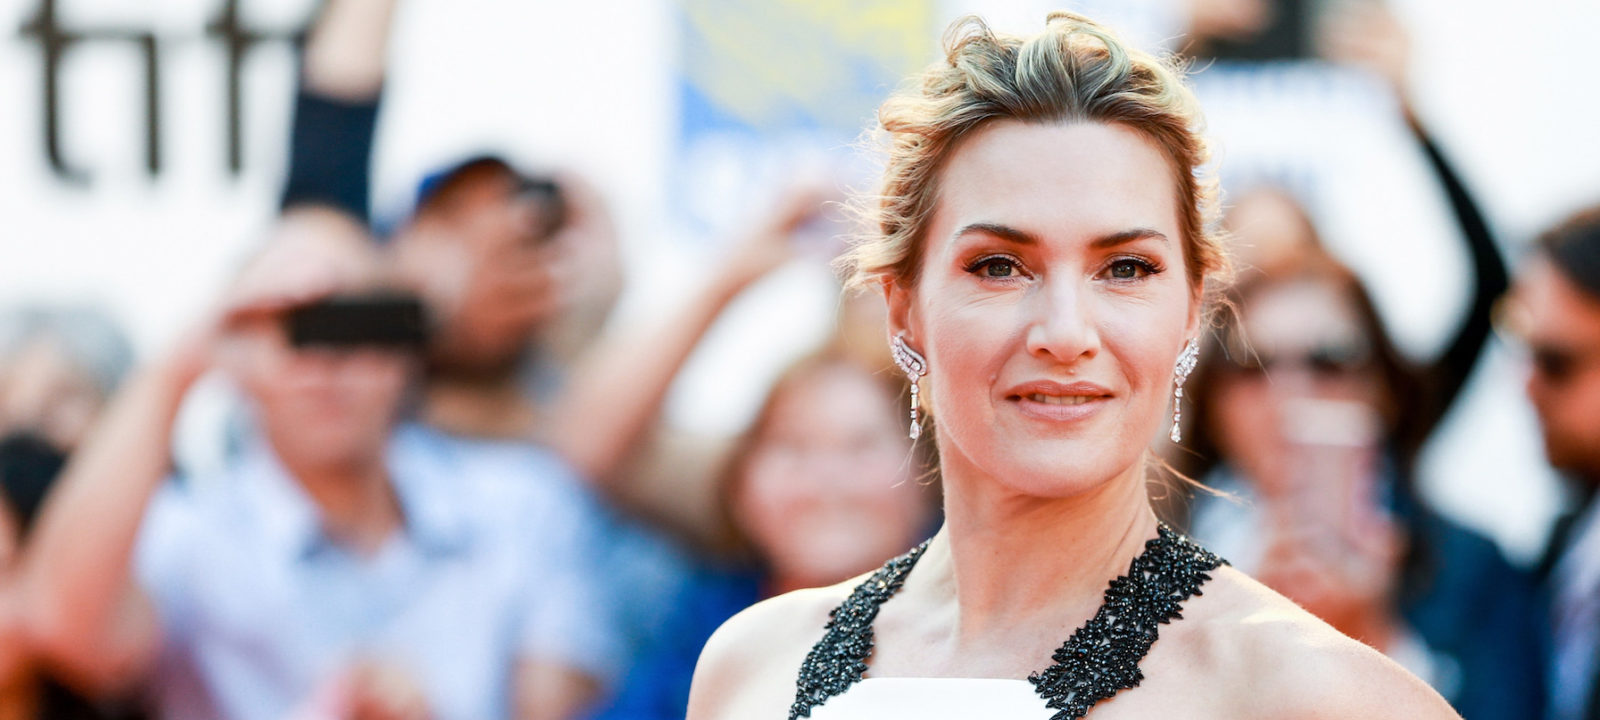 Kate Winslet attends 'The Mountain Between Us' premiere during the 2017 Toronto International Film Festival at Roy Thomson Hall on September 10, 2017 in Toronto, Canada.